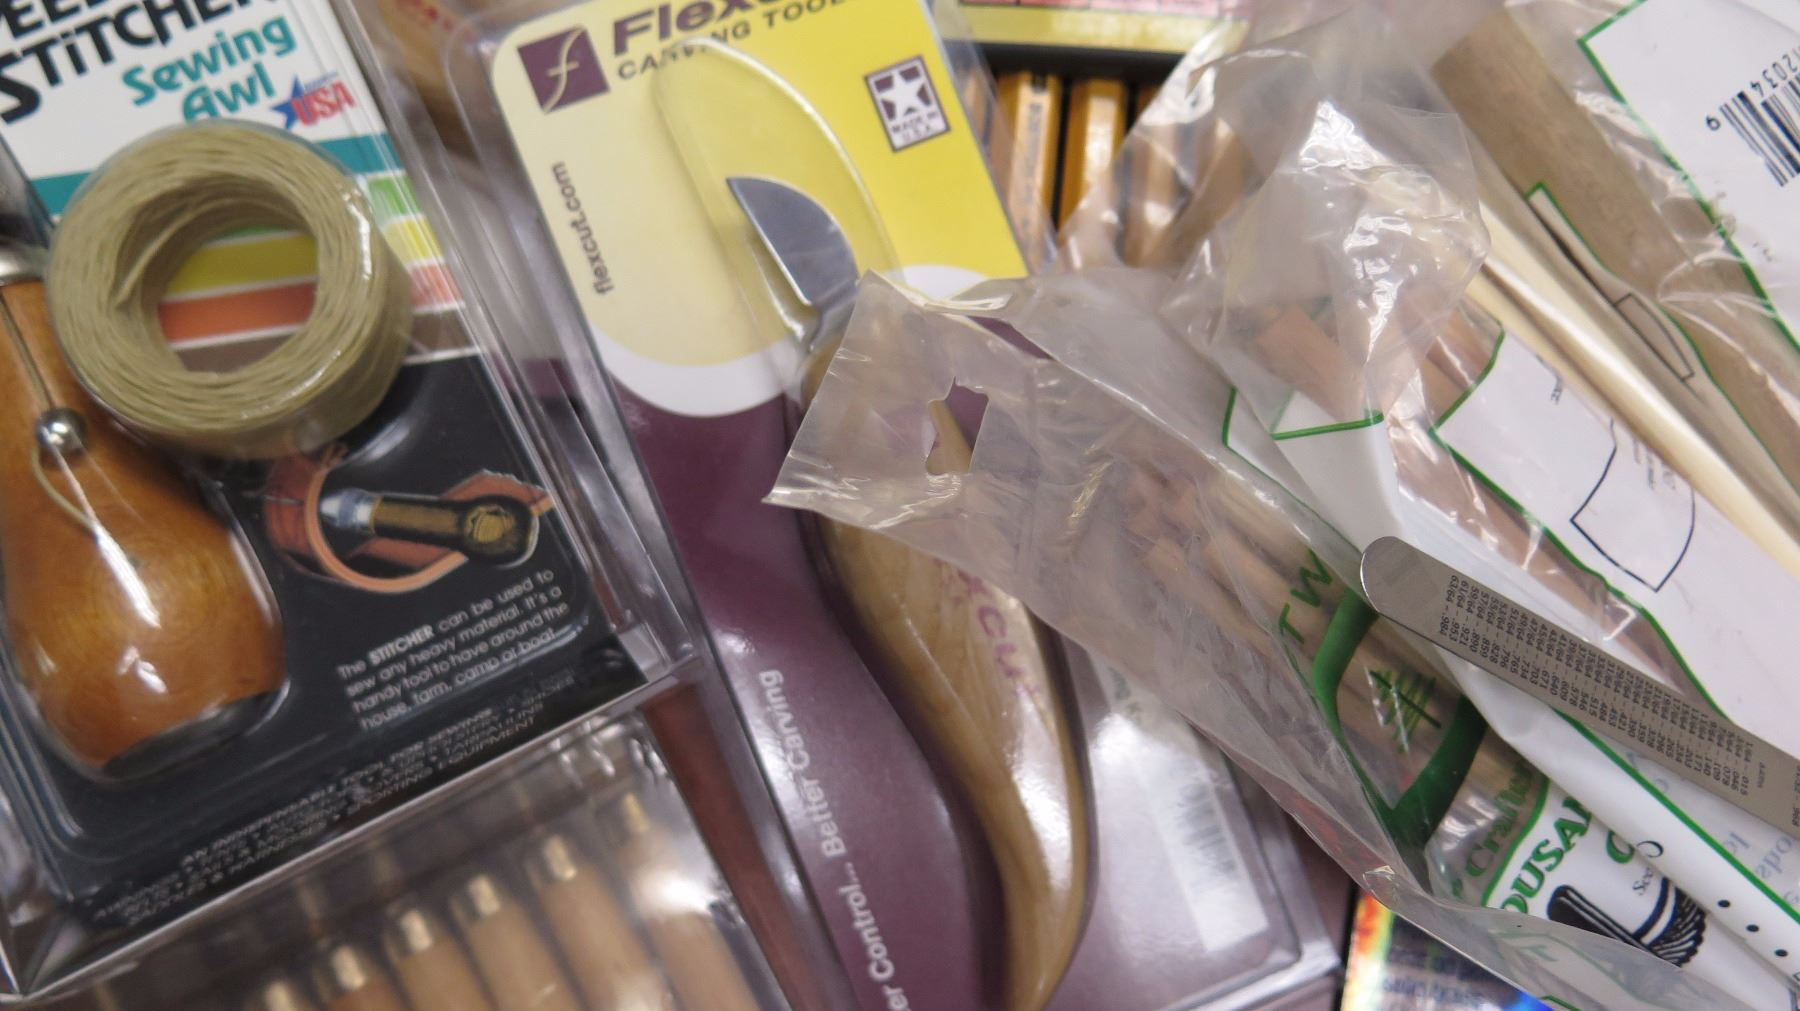 Woodworking Tools Supplies Approx 15pc